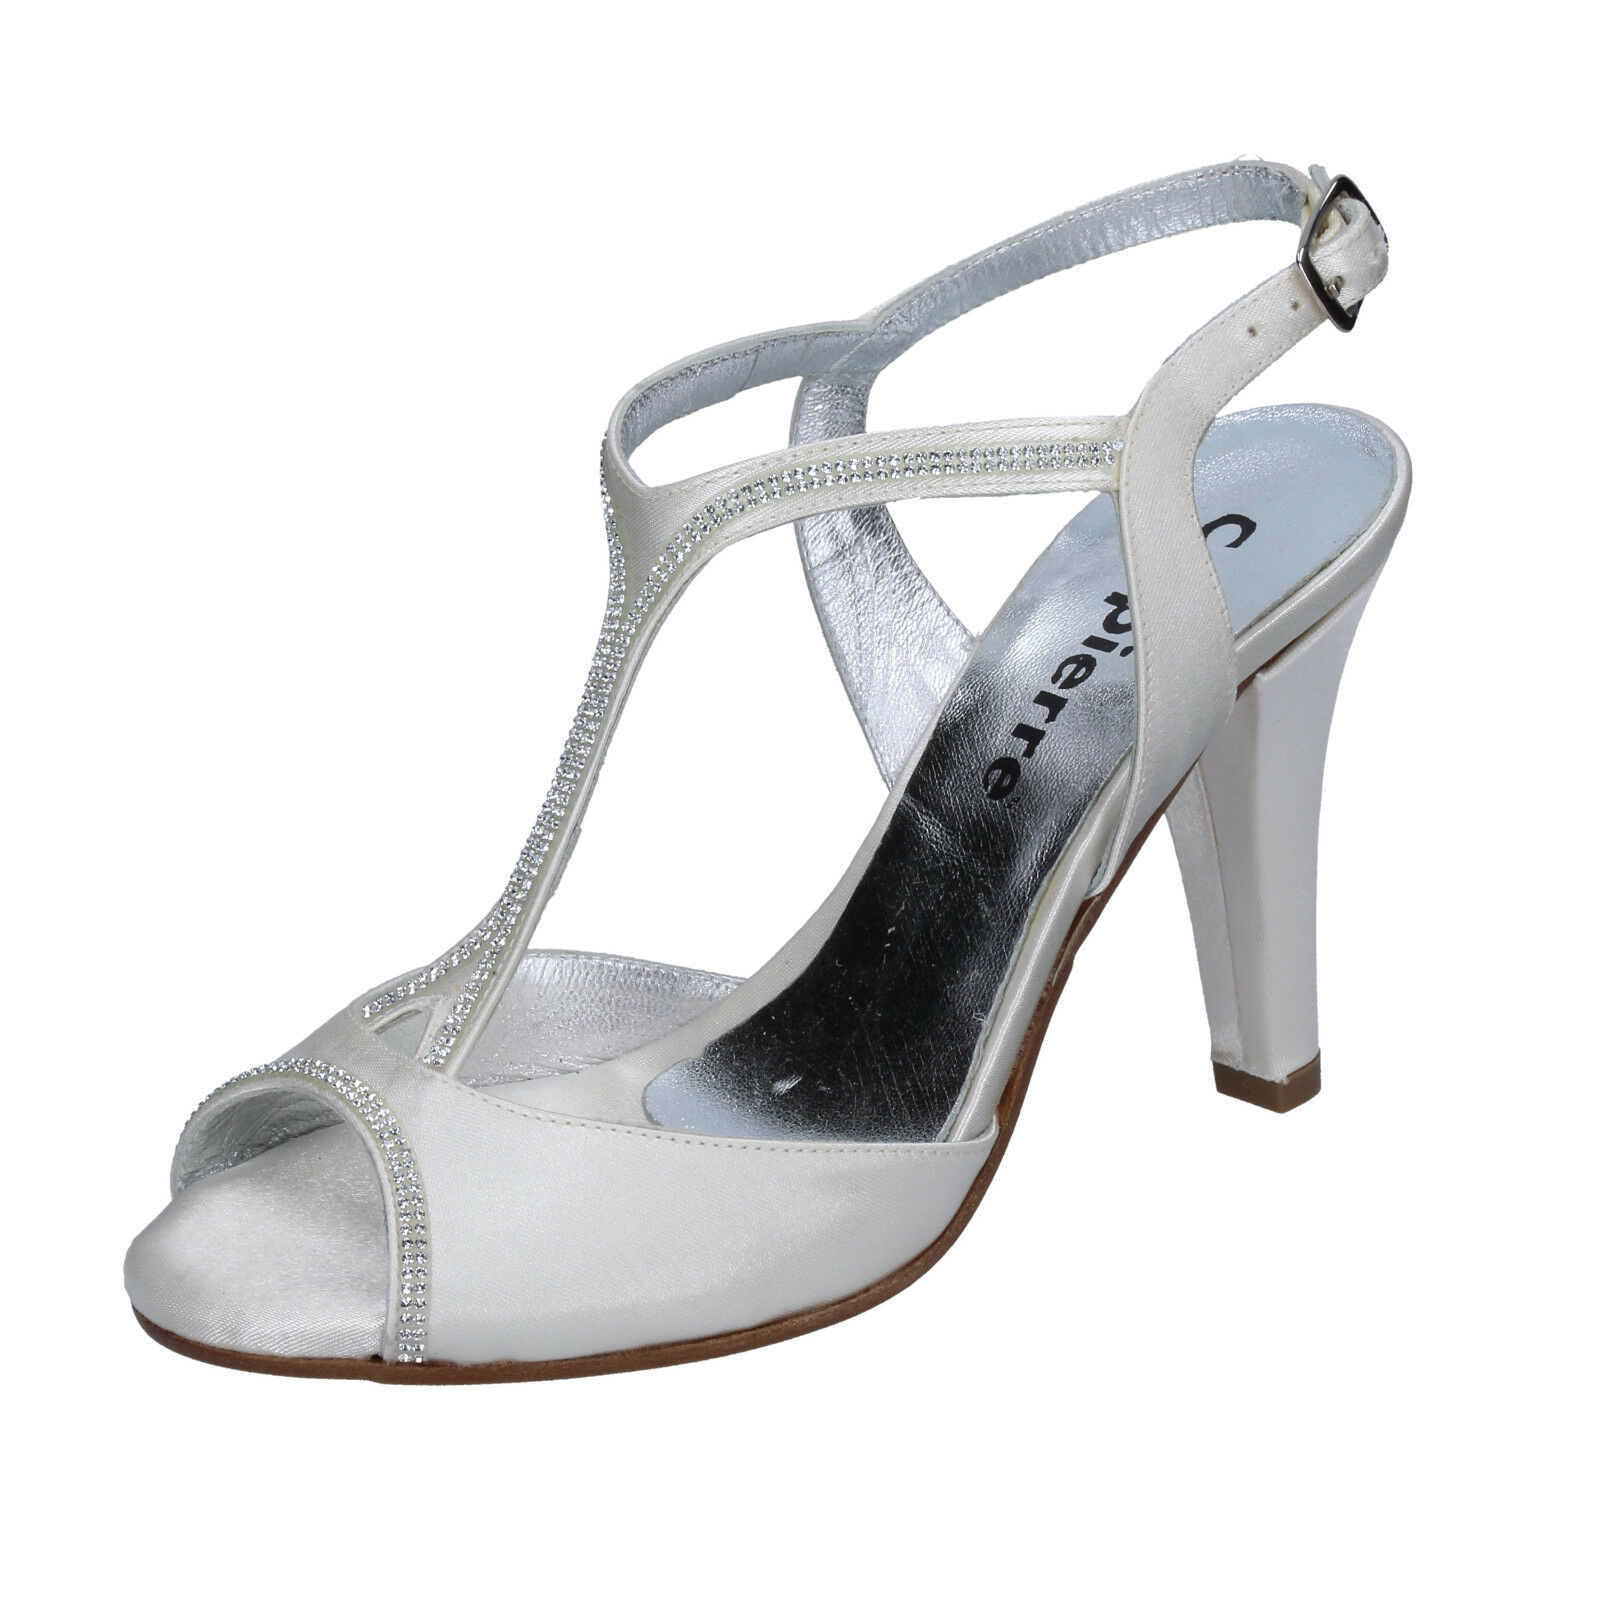 Womens shoes CALPIERRE 4 (EU 37) sandals white satin Swarovski BT672-37